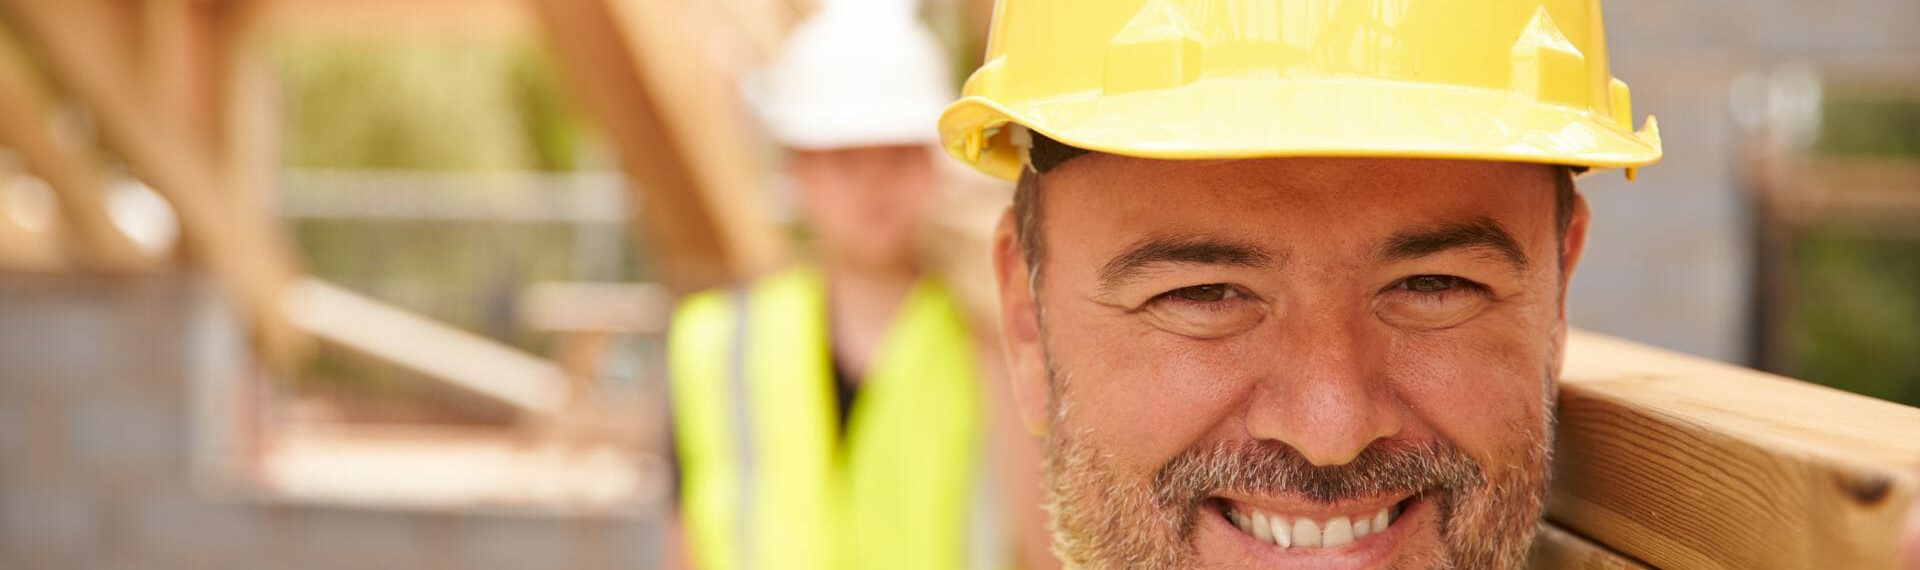 Keeping Safe As A Builder